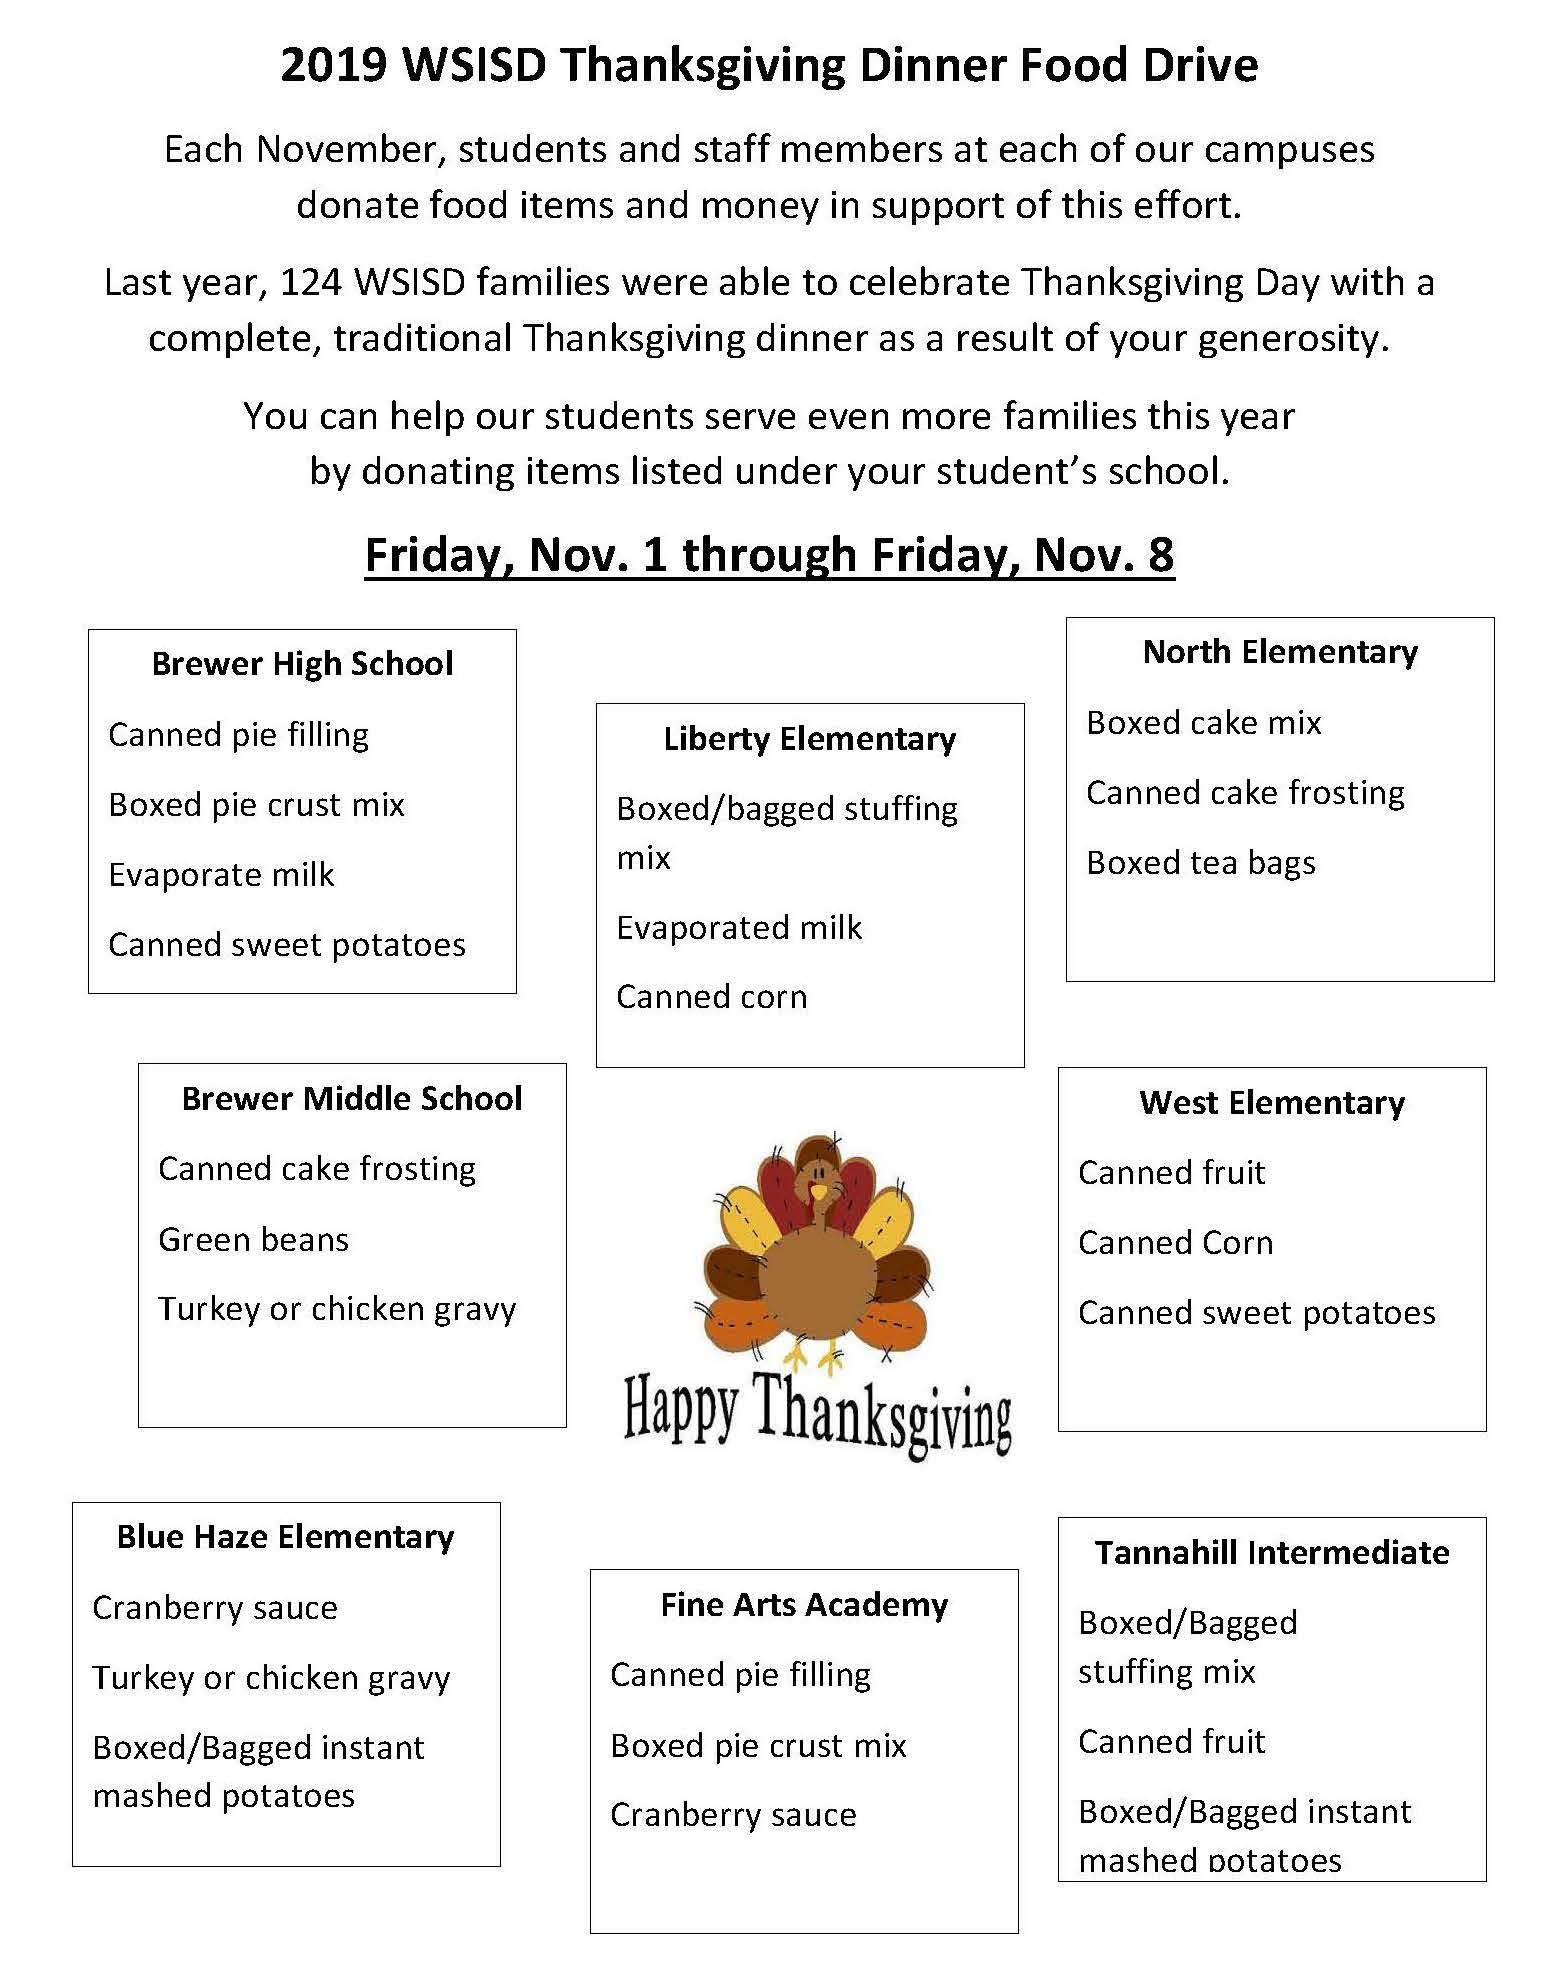 WSISD Thanksgiving Food Drive Nov. 1-8